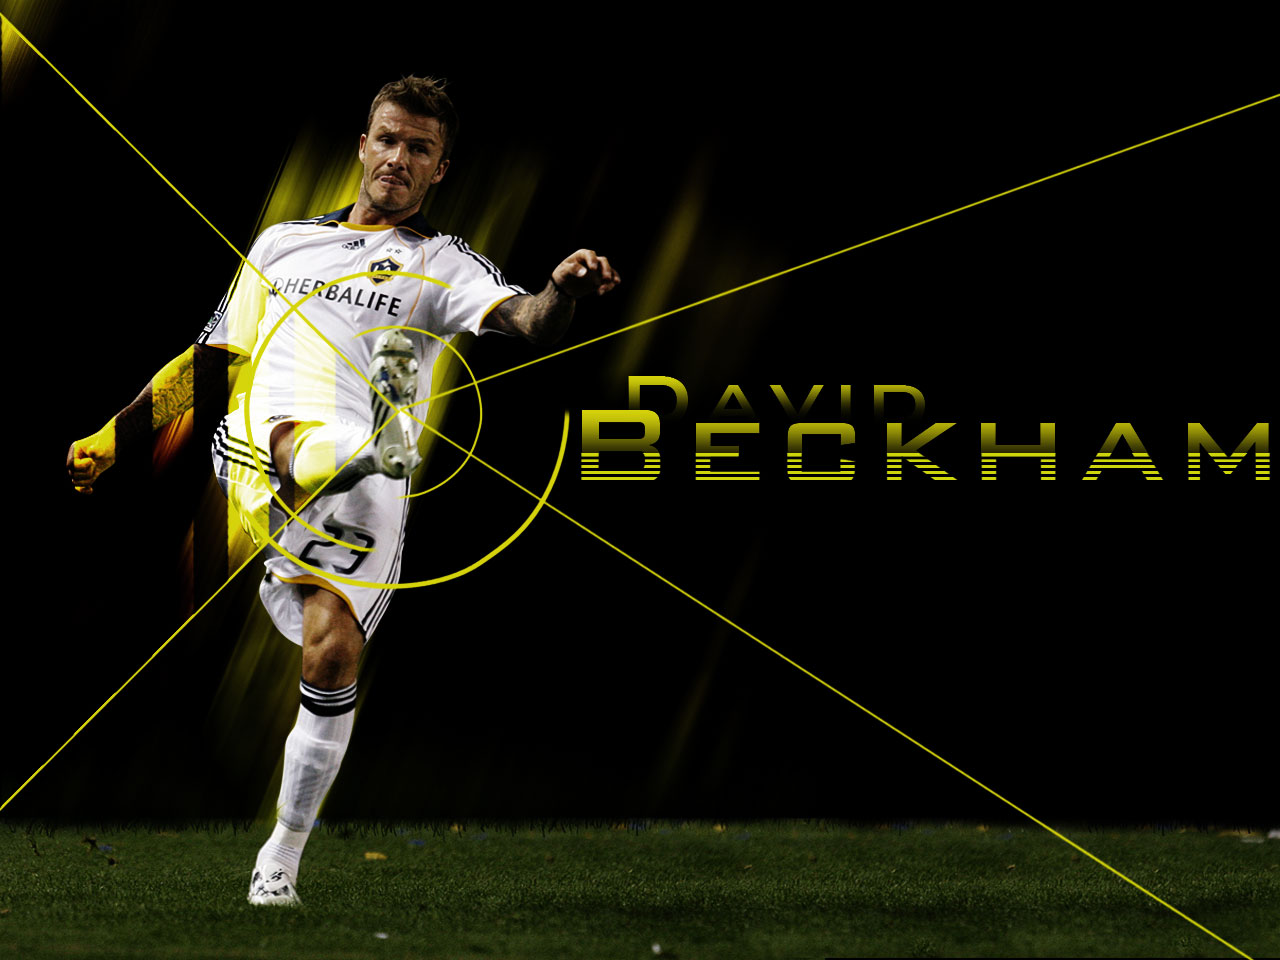 David Beckham Cool Wallpapers Football Wallpapers 2013 1280x960